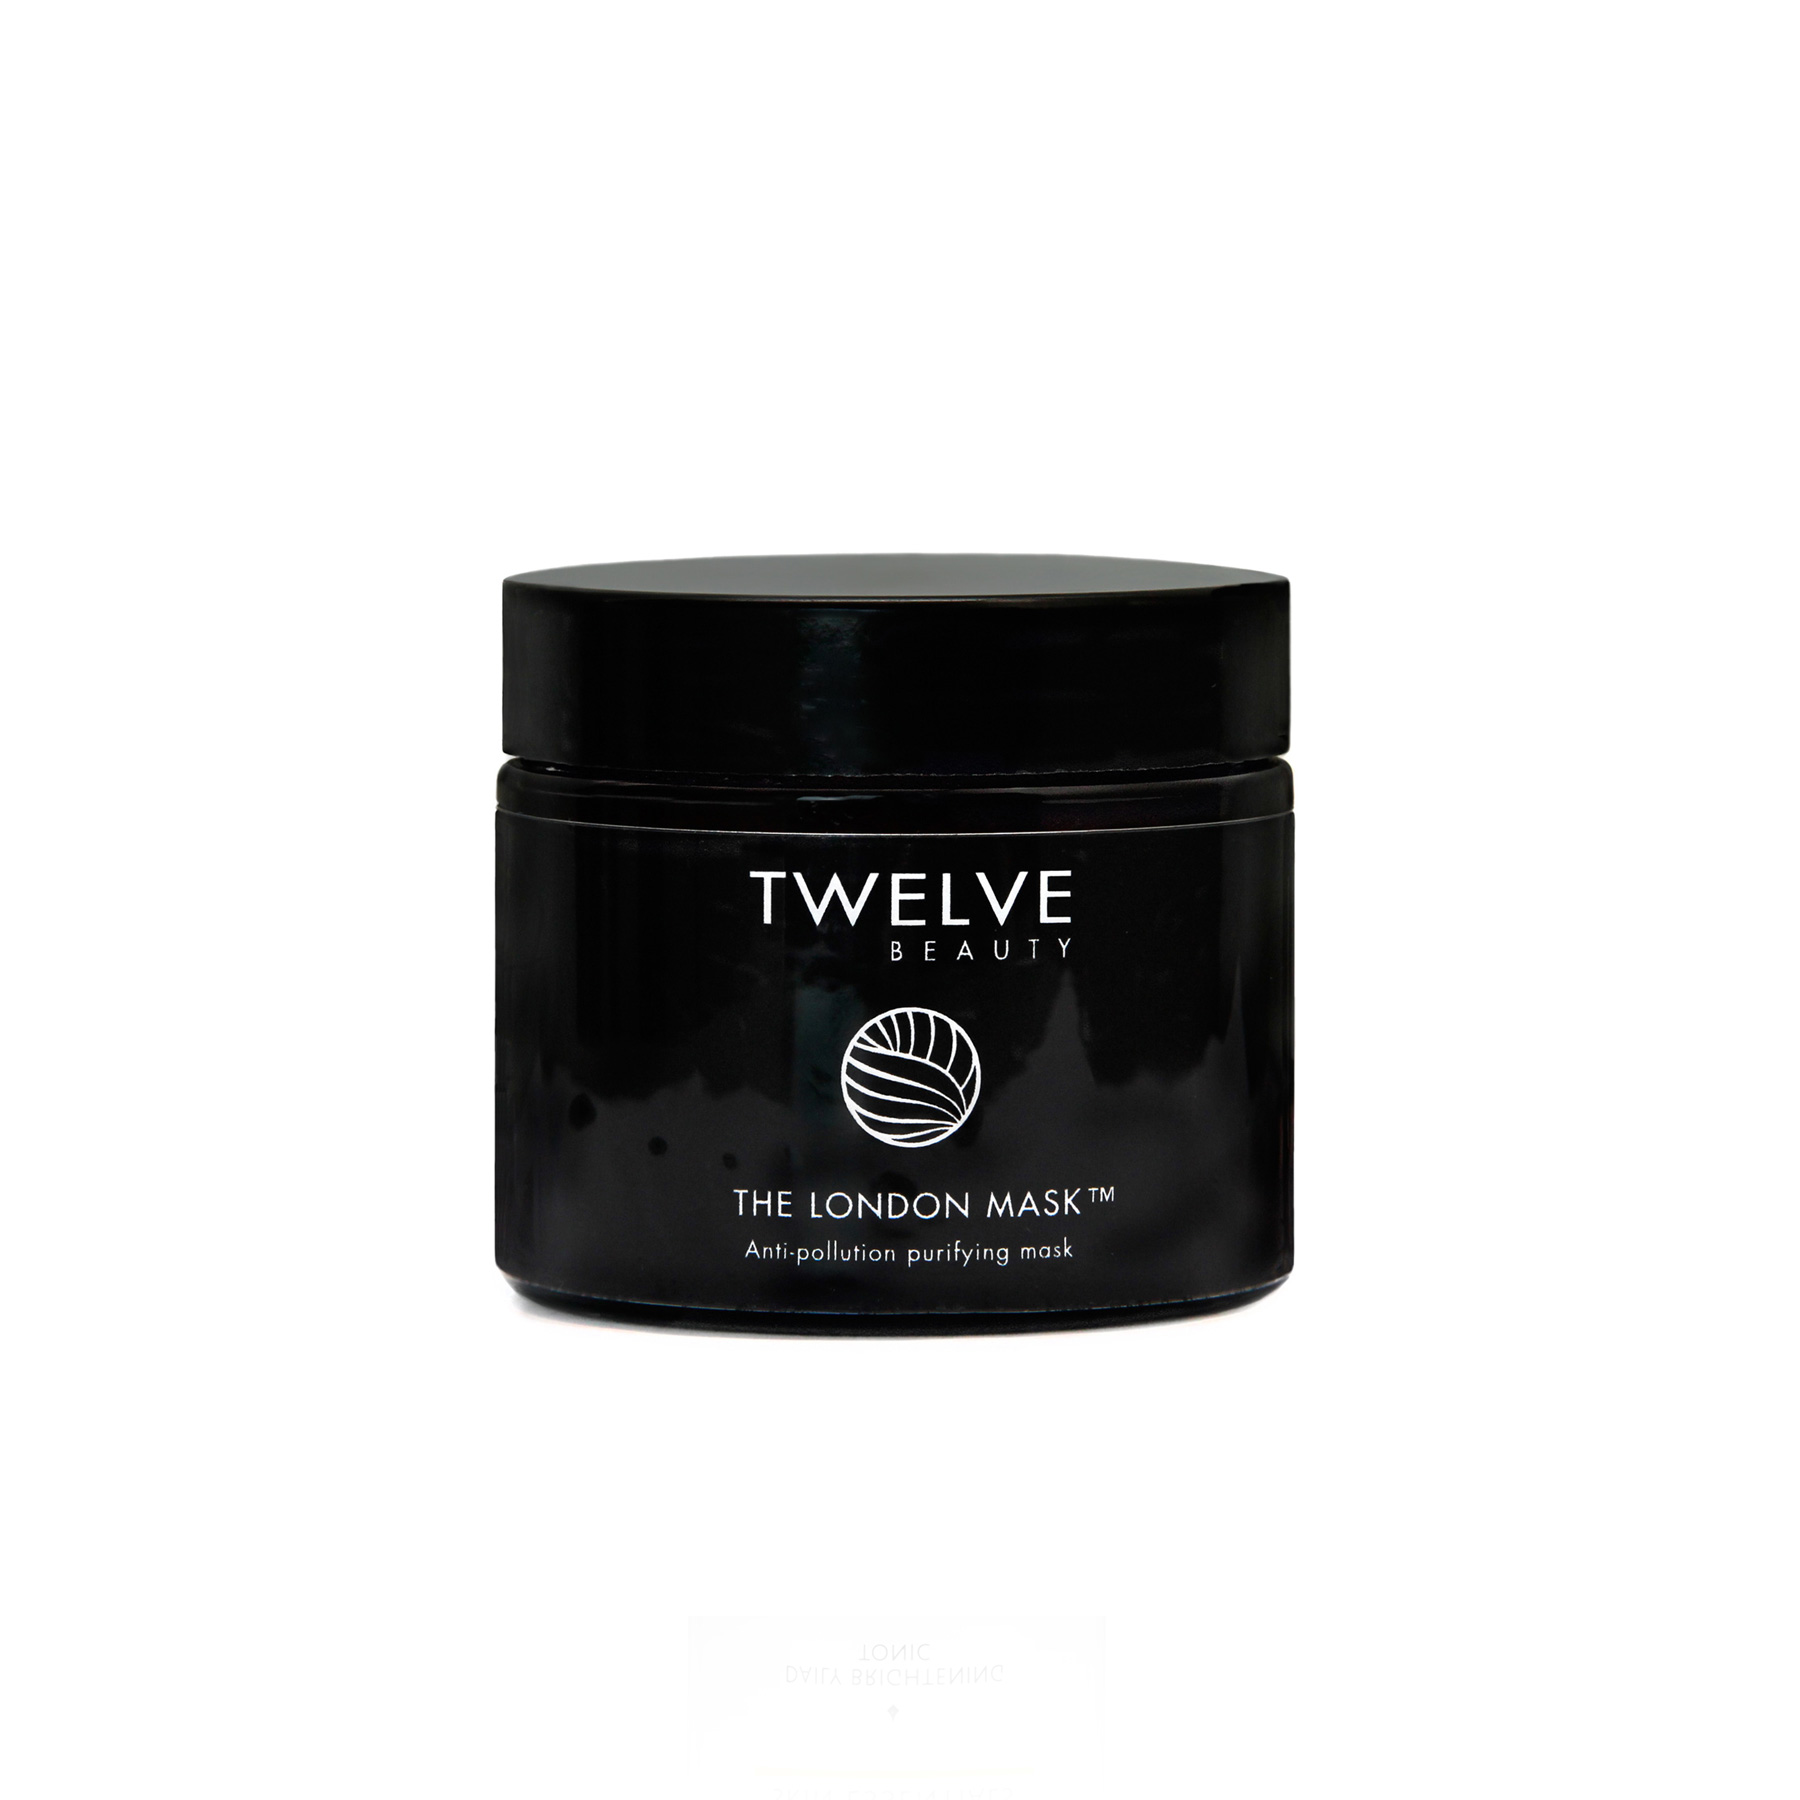 London Mask • $92   For super stressed skin  Soothing clay mask, deep cleans and calms. Luxe choice for skin with mix of issues including redness, breakouts.